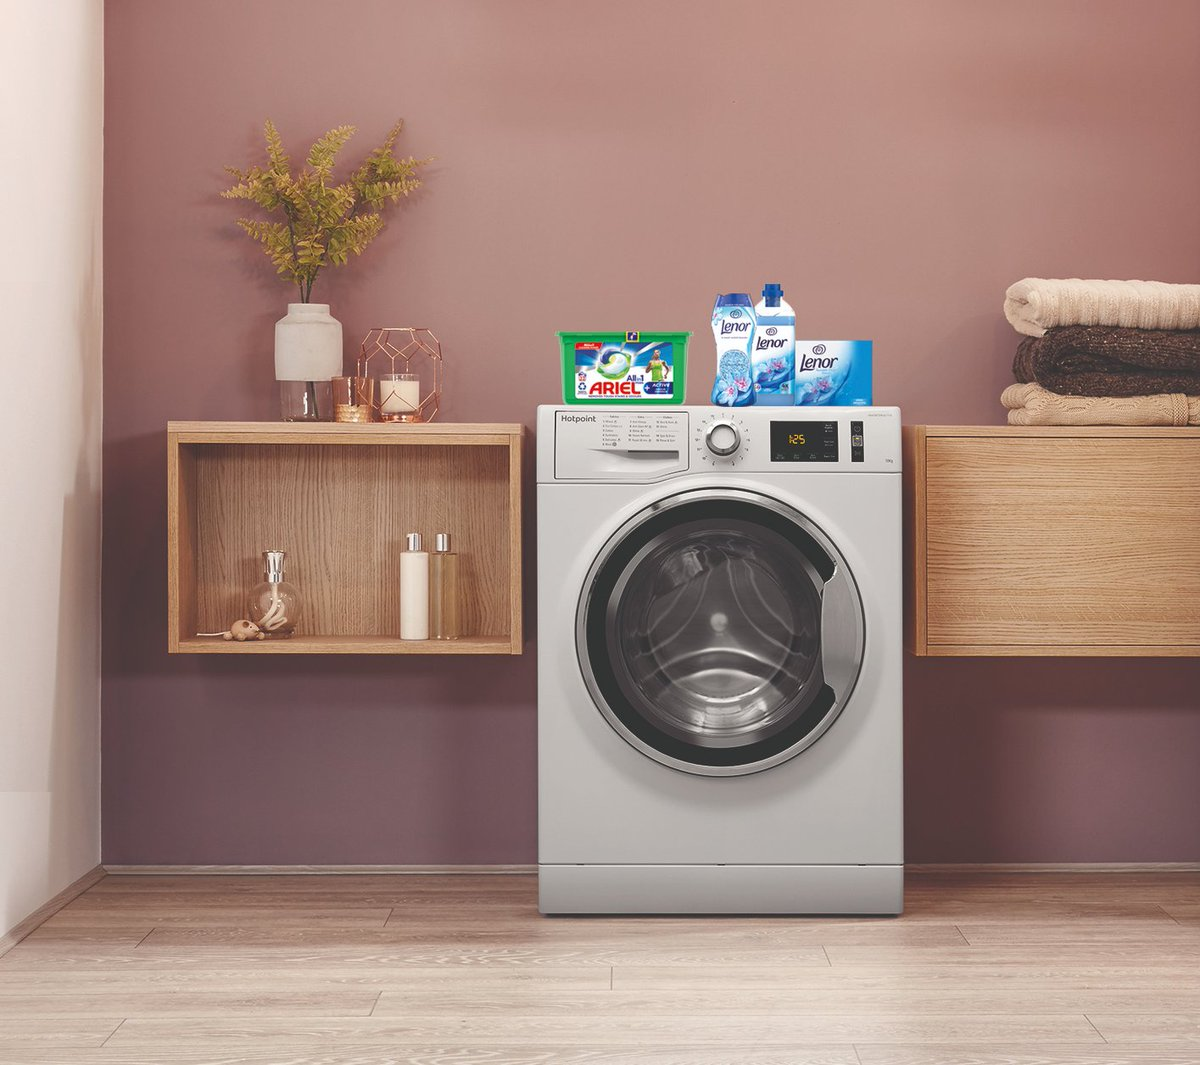 test Twitter Media - Major domestic appliance manufacturer, Hotpoint has launched a laundry promotion. For full information, visit our blog: https://t.co/G1oC5v0lAV https://t.co/eEHlS02ZXx